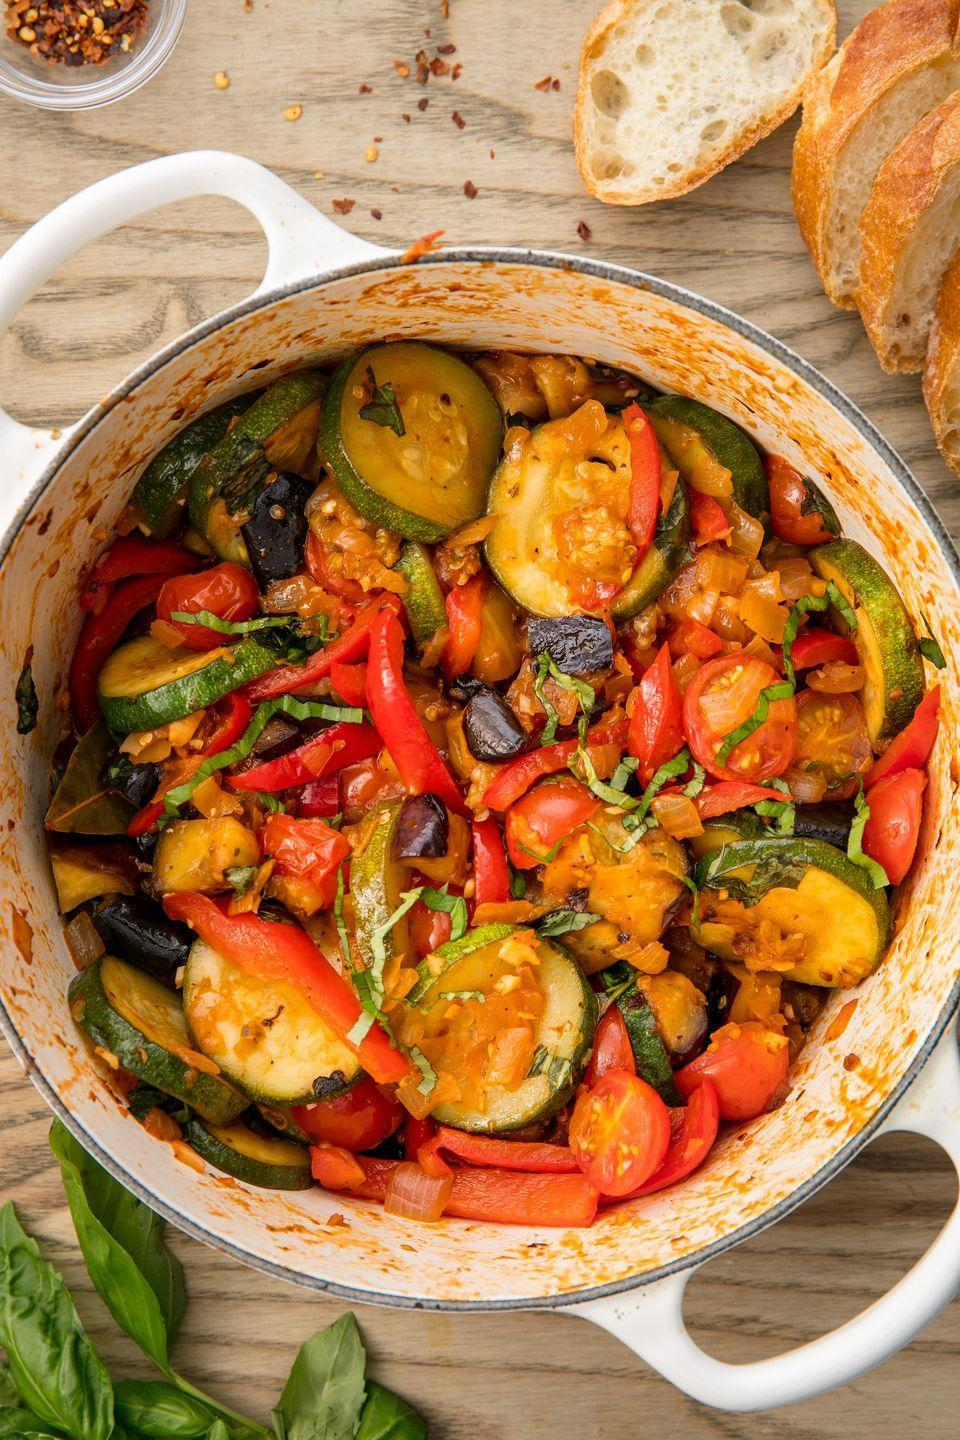 "<p>Remy would be so proud.</p><p>Get the recipe from <a href=""https://www.delish.com/cooking/recipe-ideas/recipes/a54463/easy-traditional-ratatouille-recipe/"" rel=""nofollow noopener"" target=""_blank"" data-ylk=""slk:Delish"" class=""link rapid-noclick-resp"">Delish</a>.</p>"